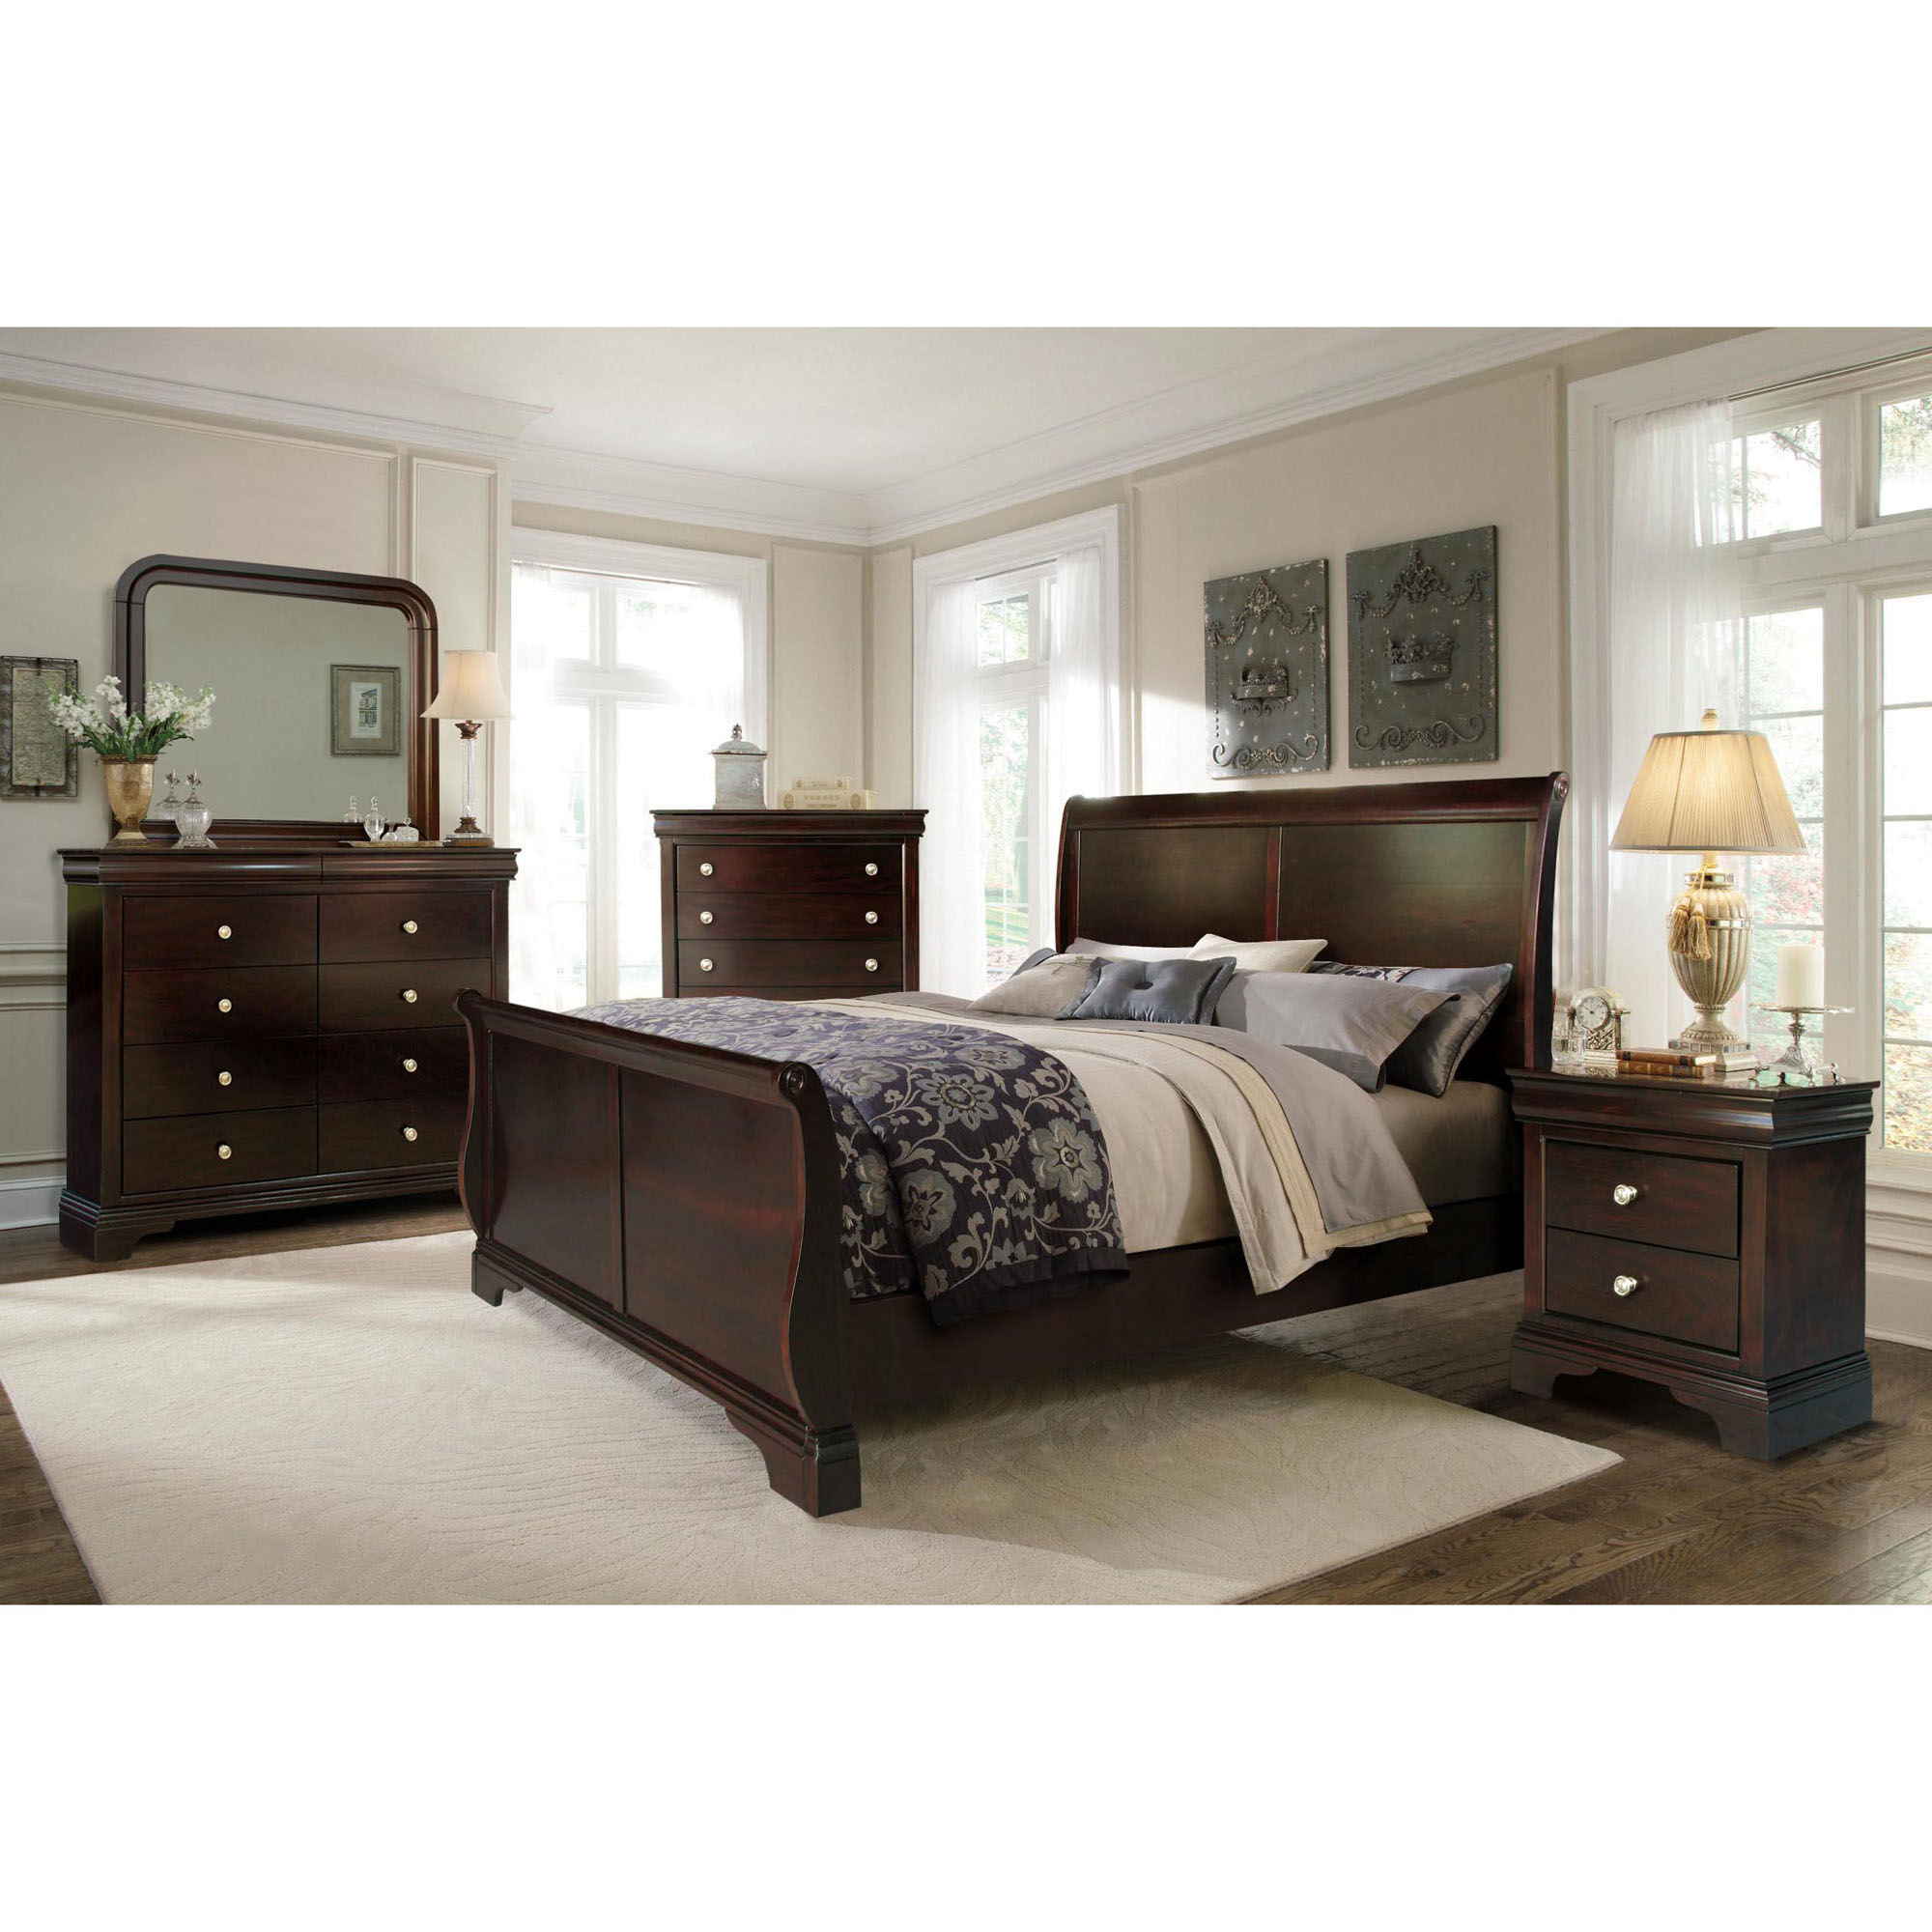 Awesome Aarons Bedroom Sets Exterior